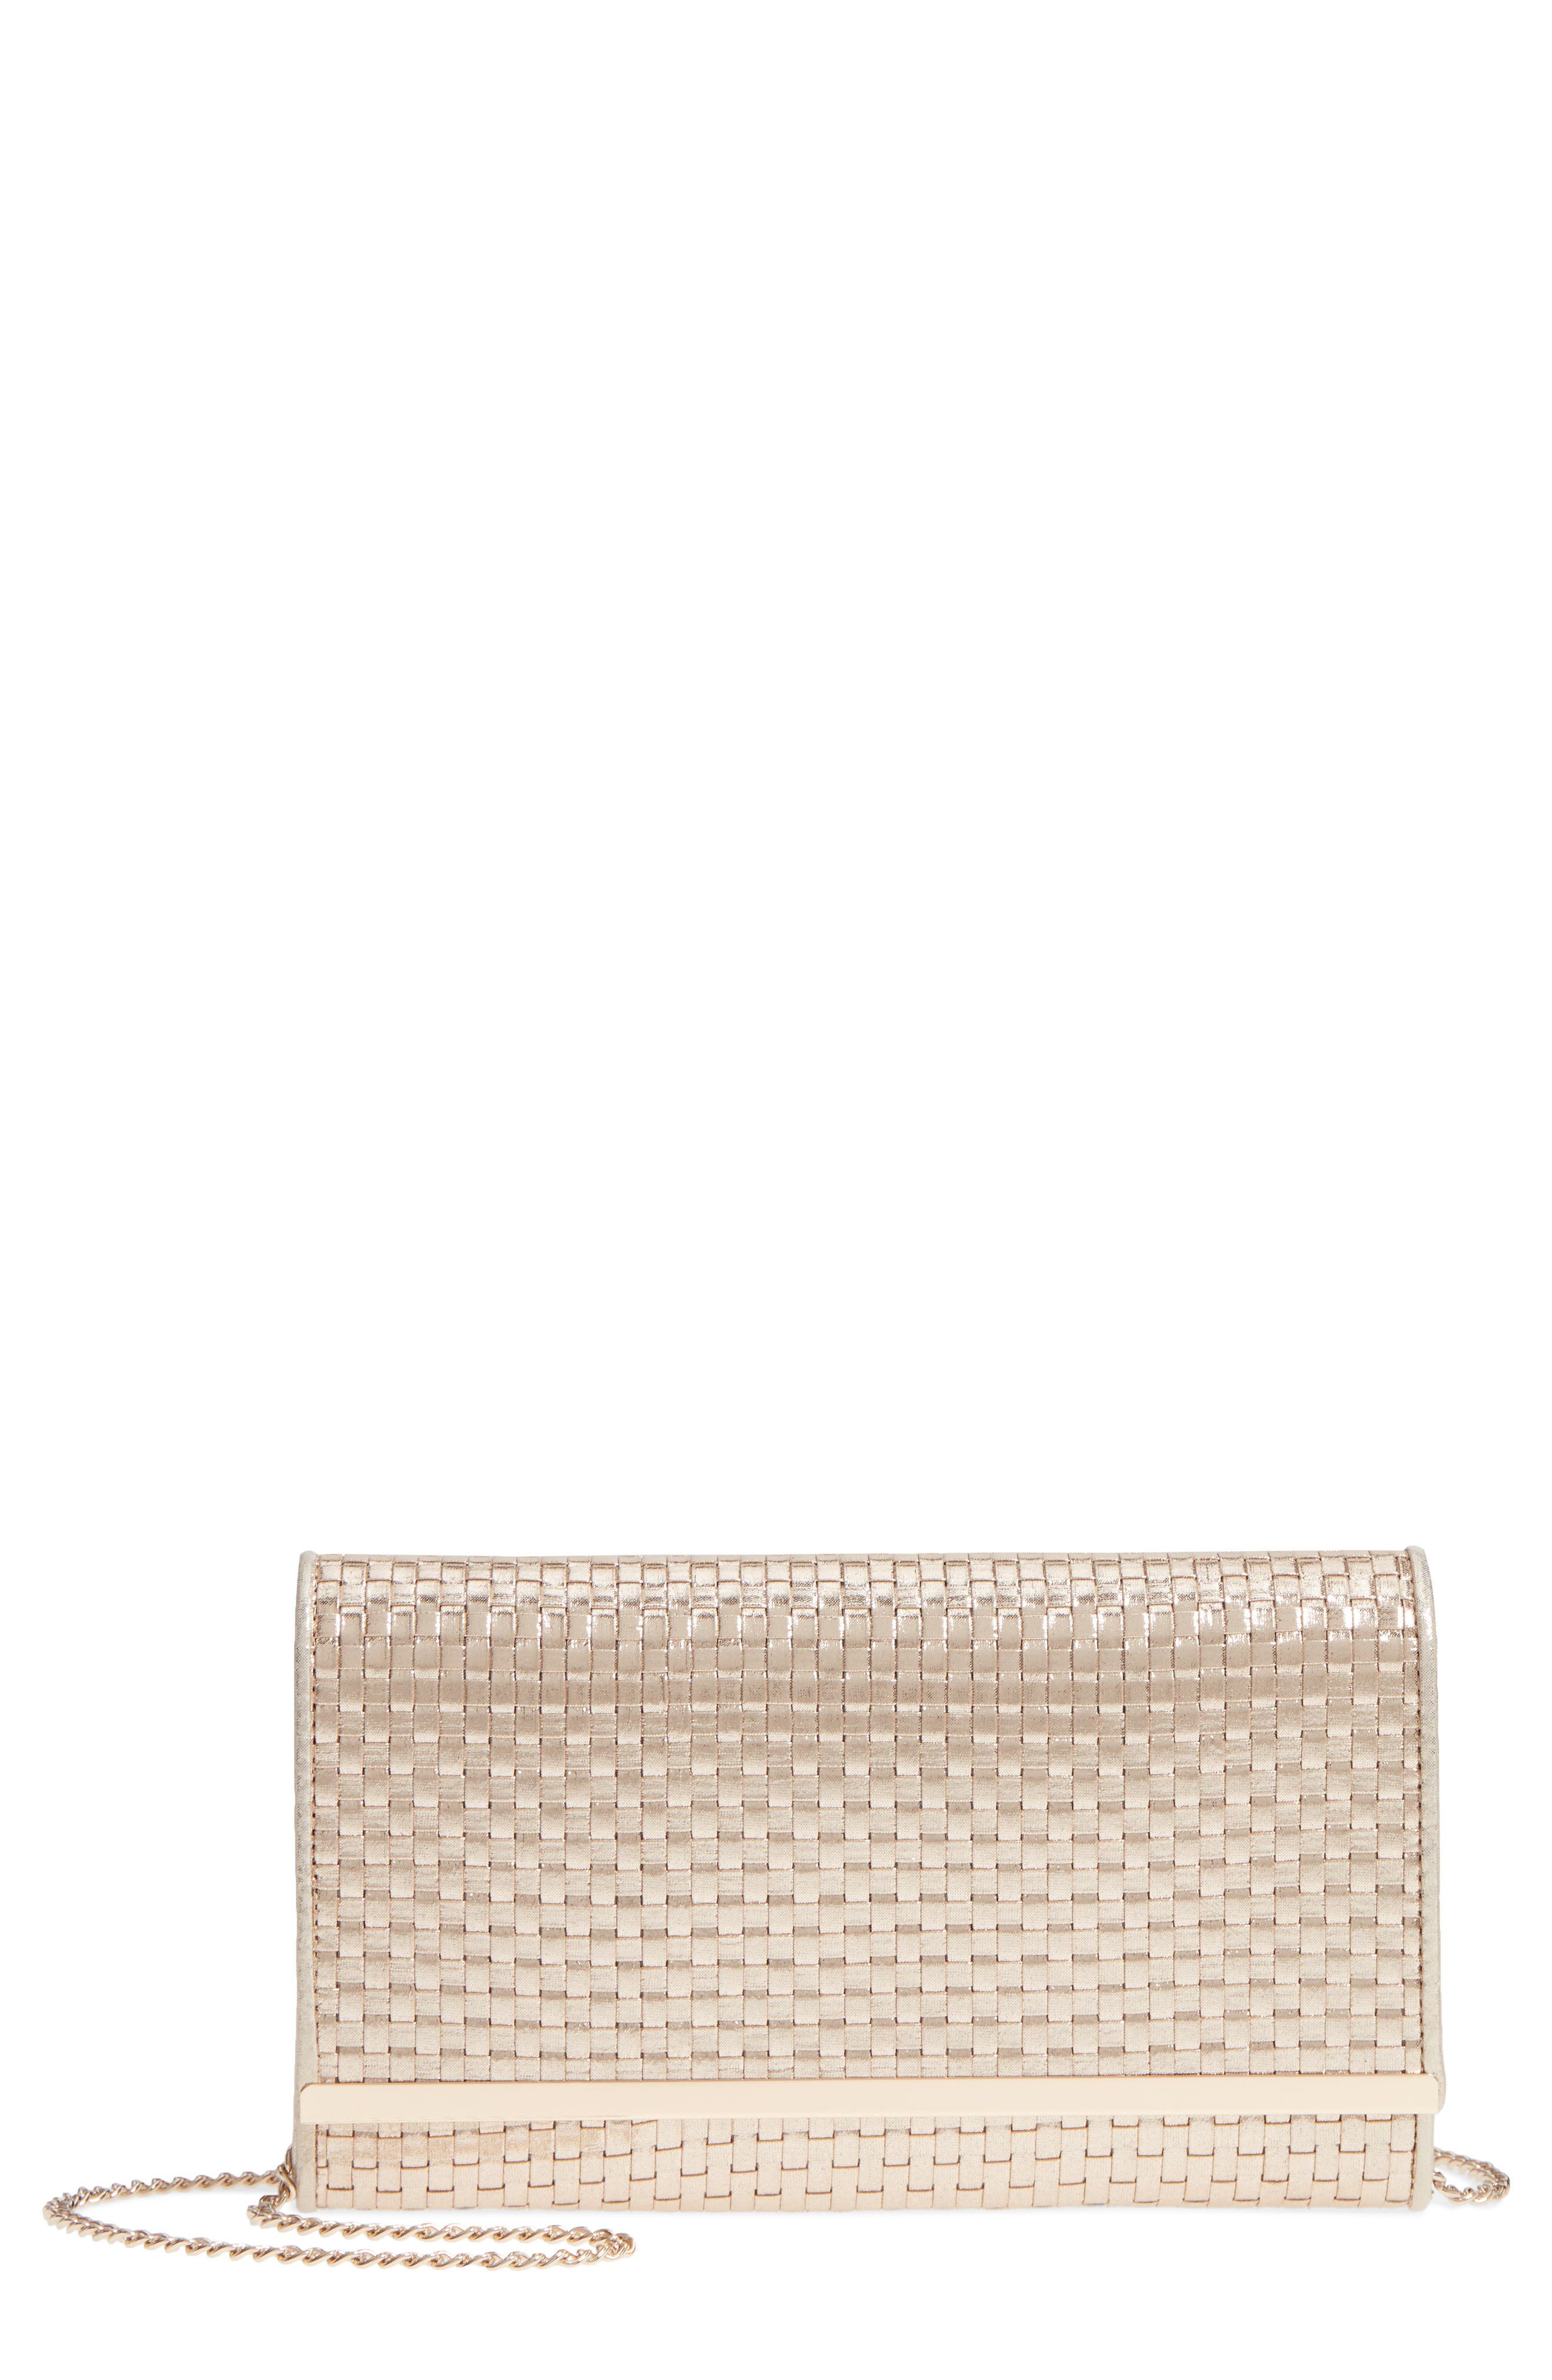 Nordstrom Woven Faux Leather Metallic Clutch